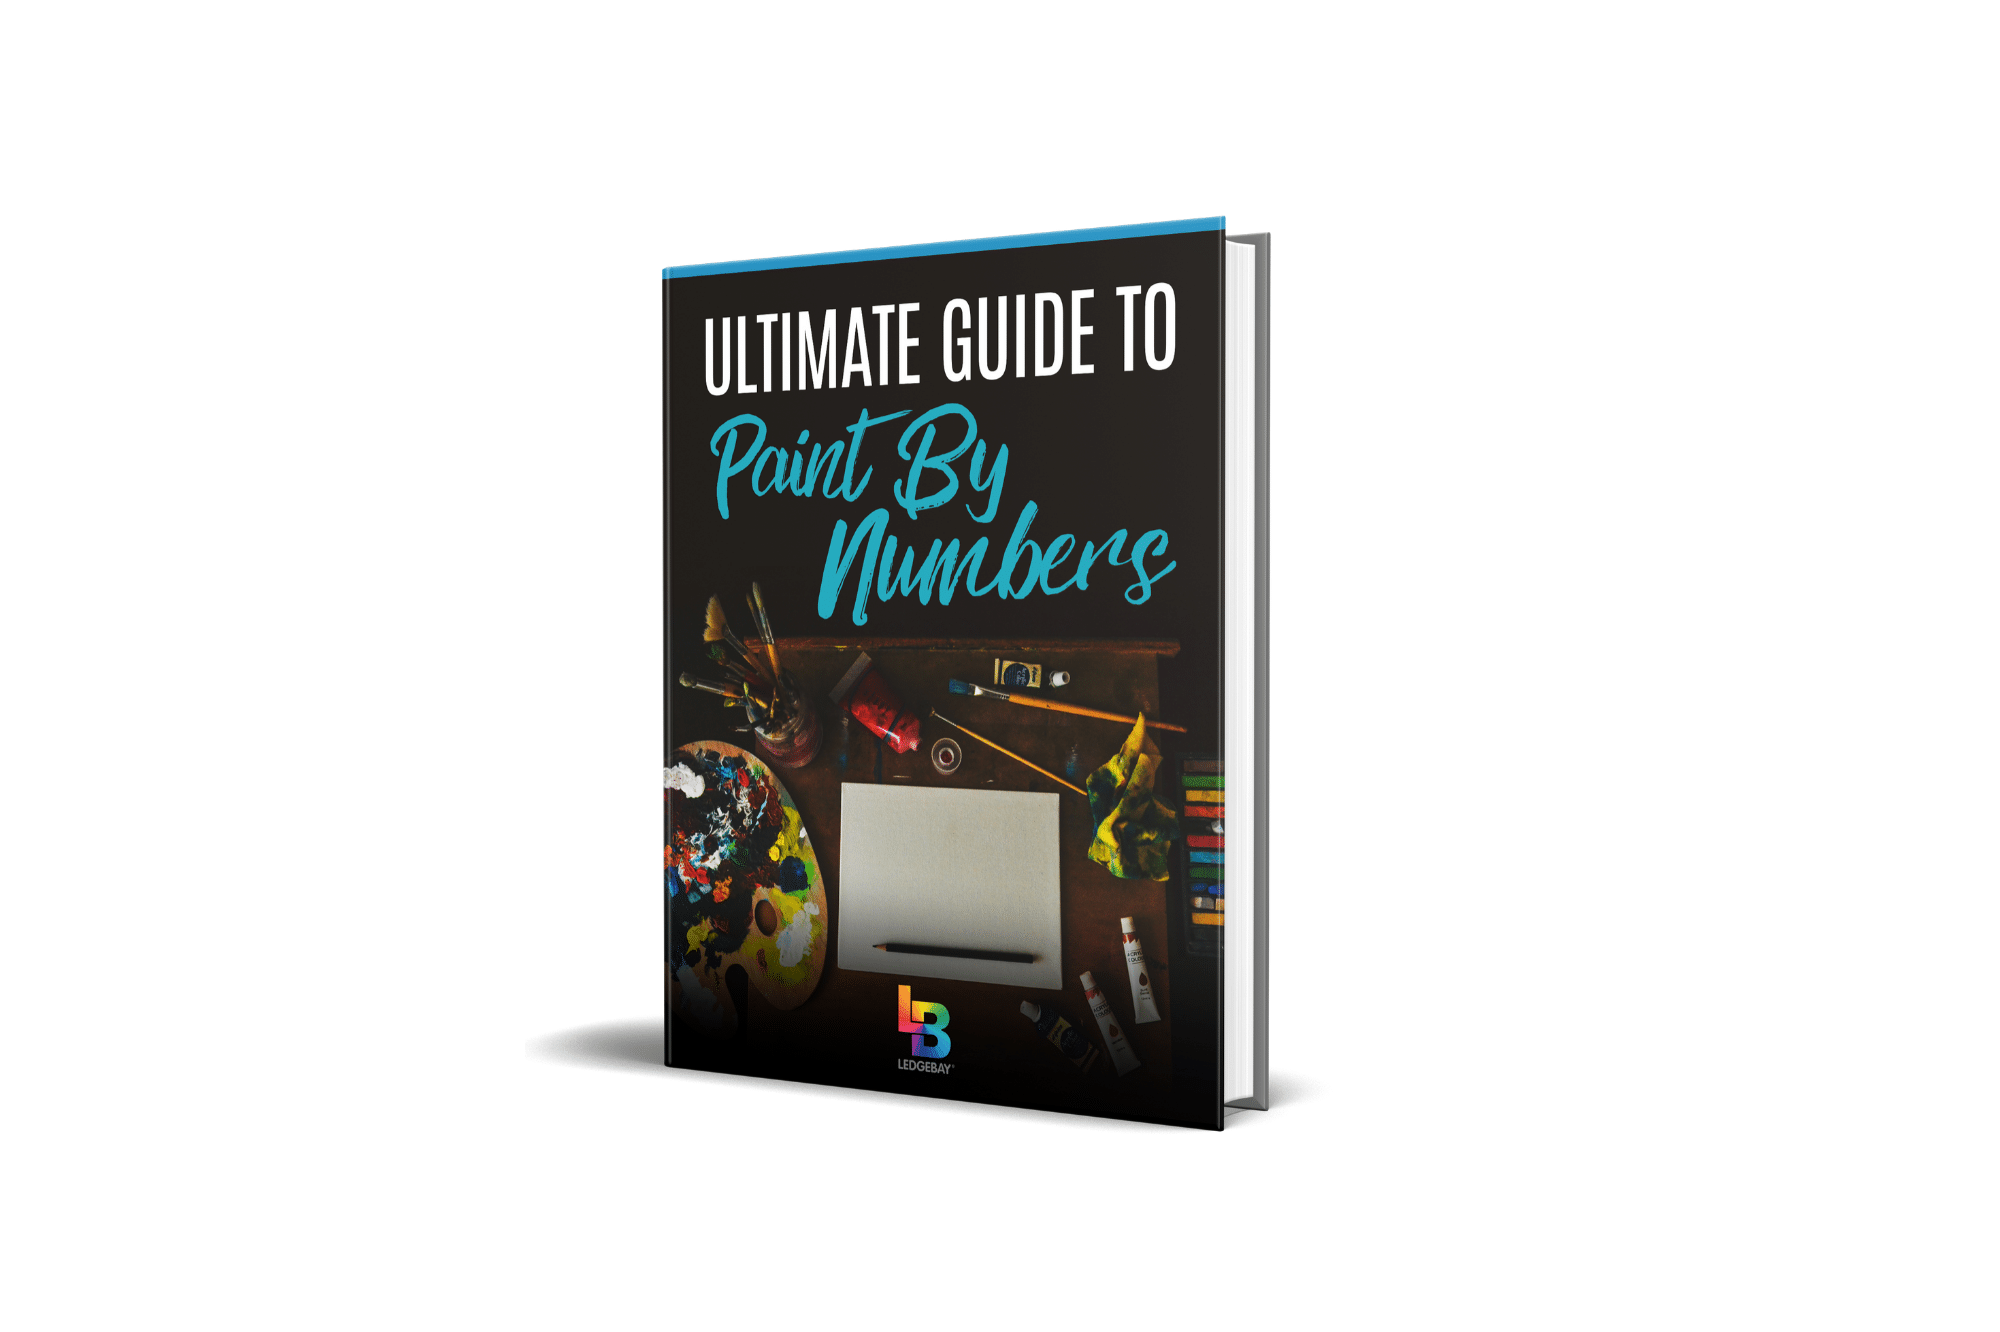 Ultimate-Guide-To-Paint-By-Numbers-For-Adults